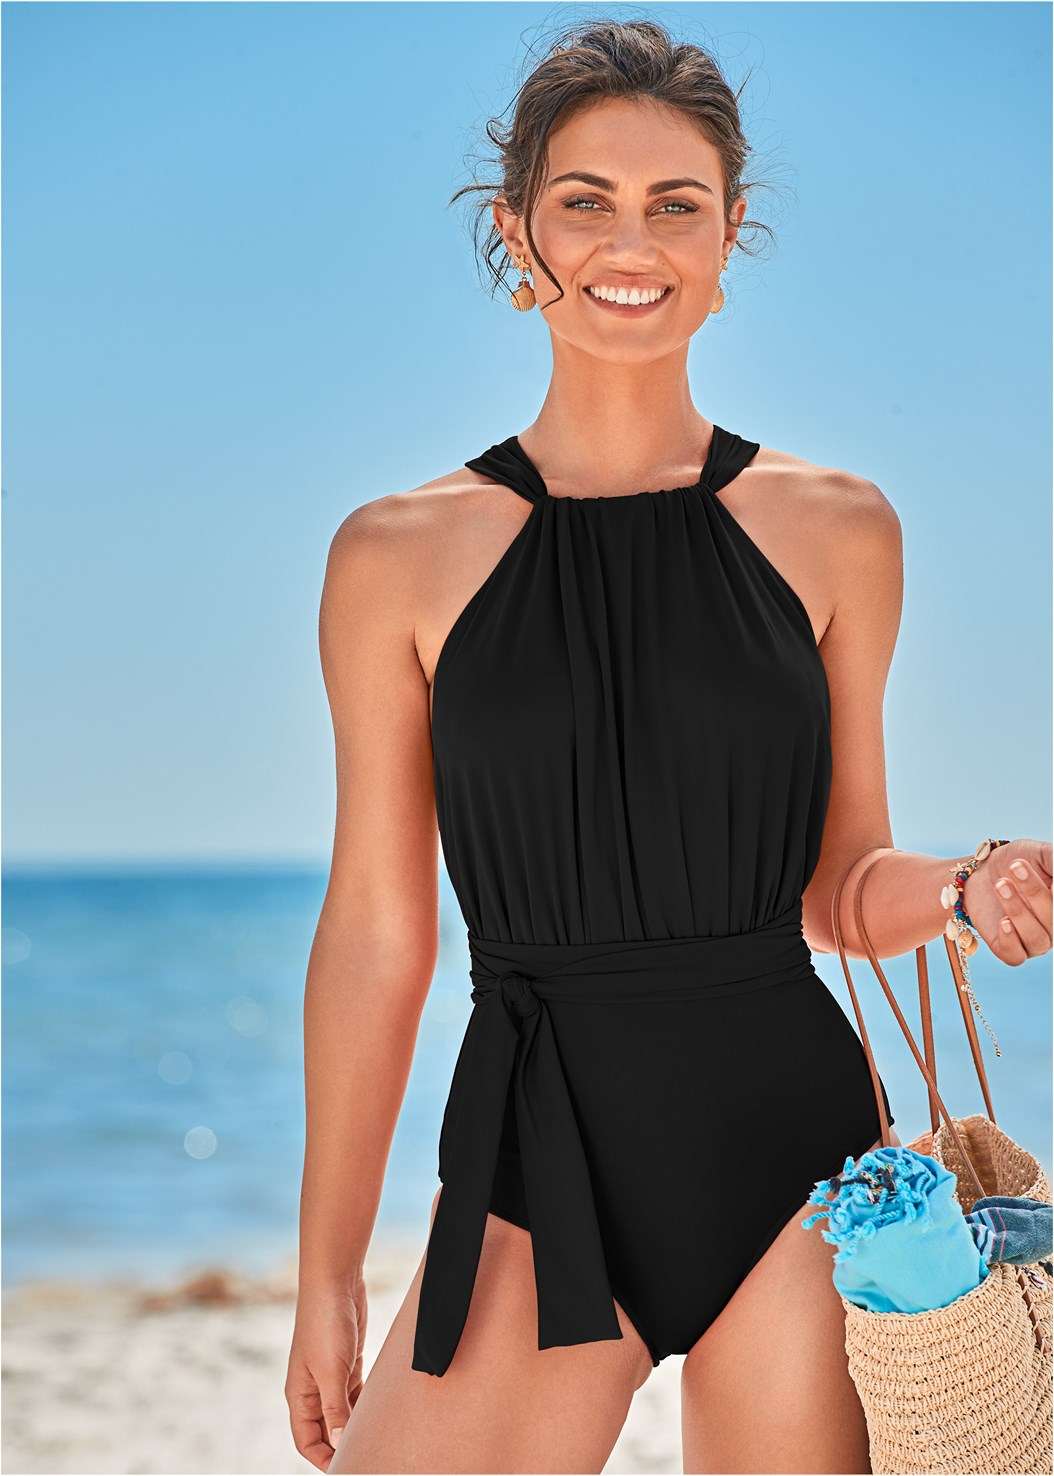 Heather One-Piece,Roman Cover-Up Beach Dress